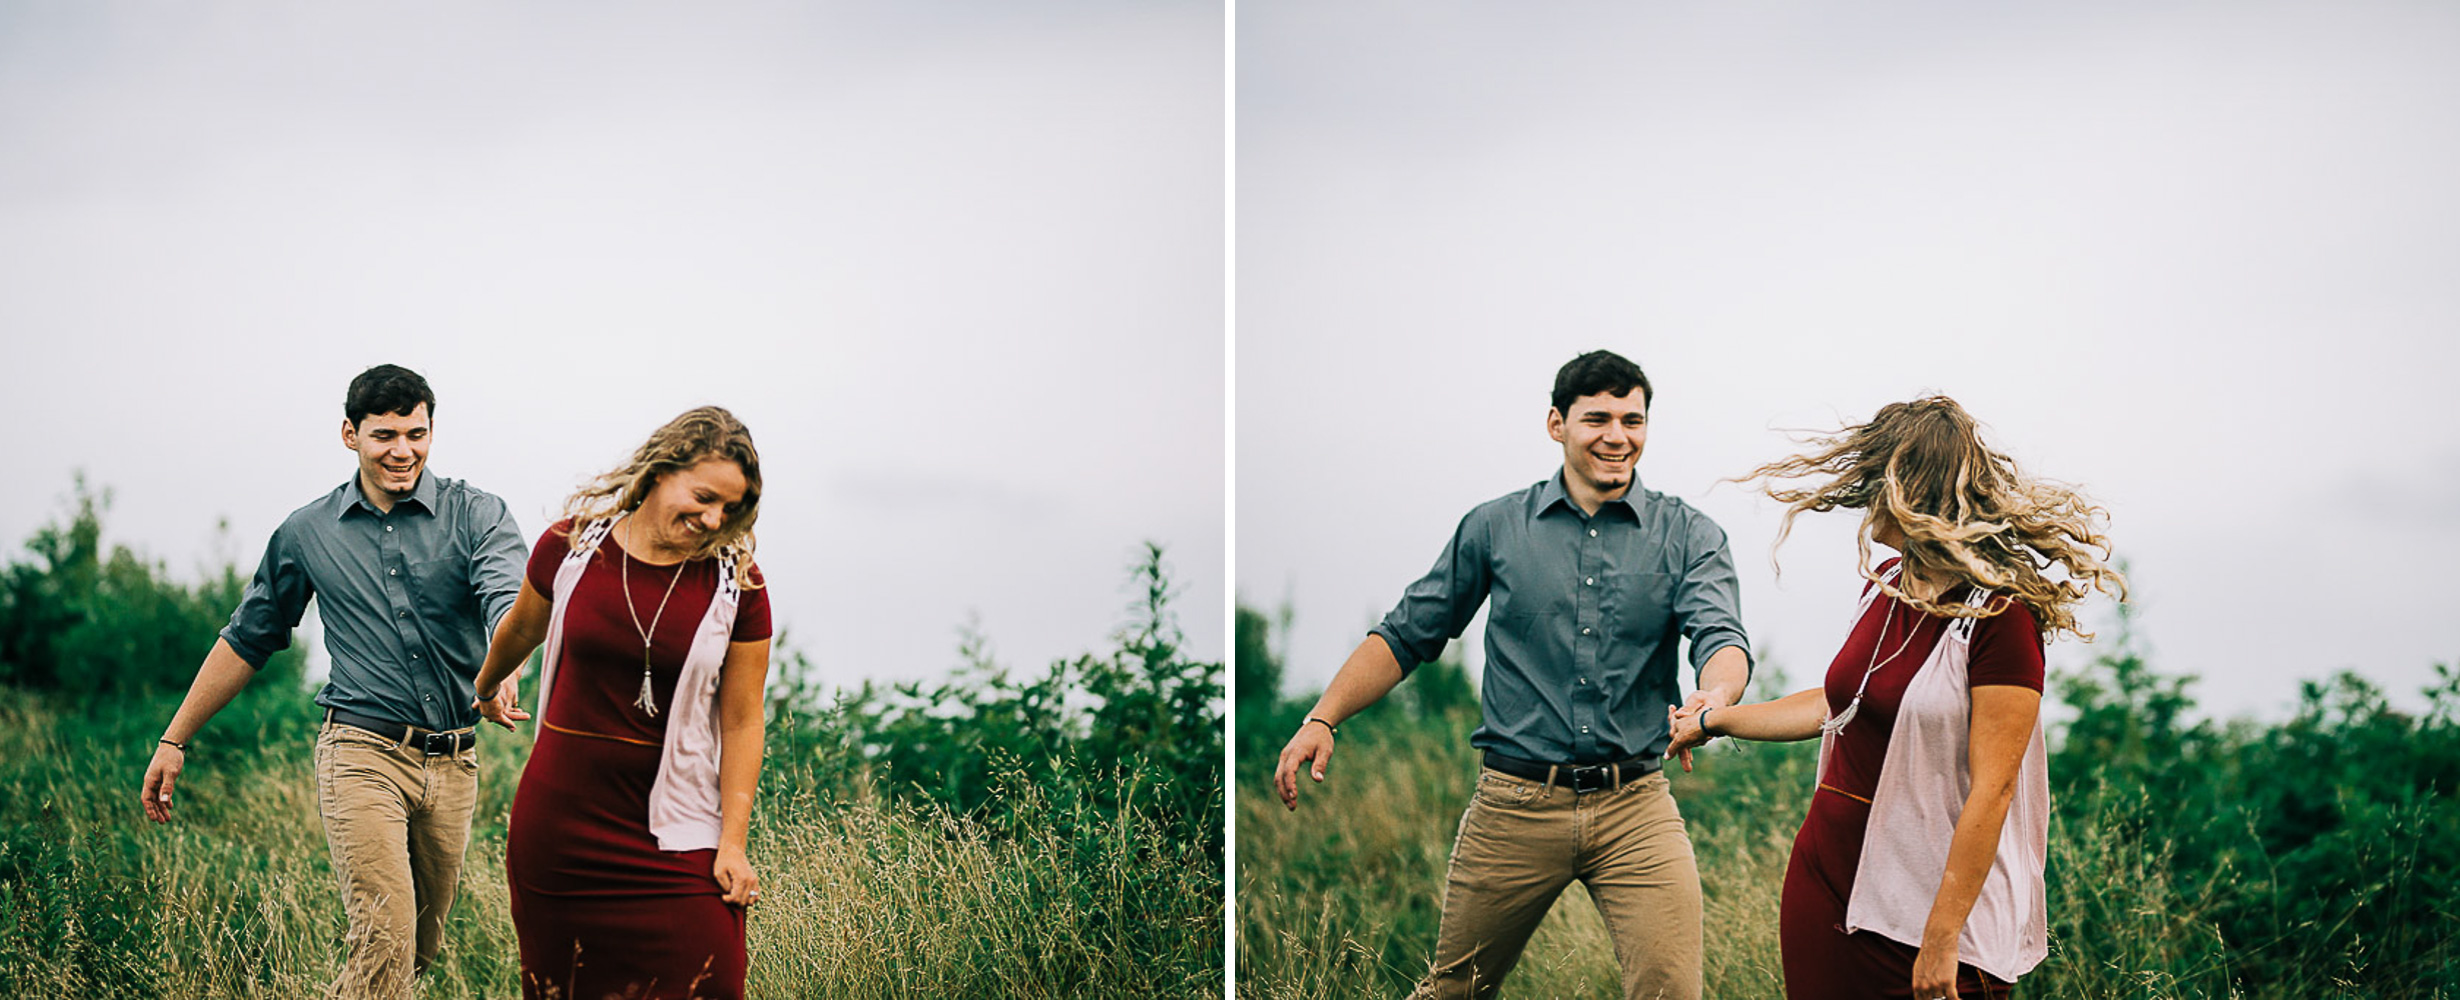 Mountain Engagement, Summer Engaement, Engaged, Engaement Portriats, Engagement Pictures, 18.jpg